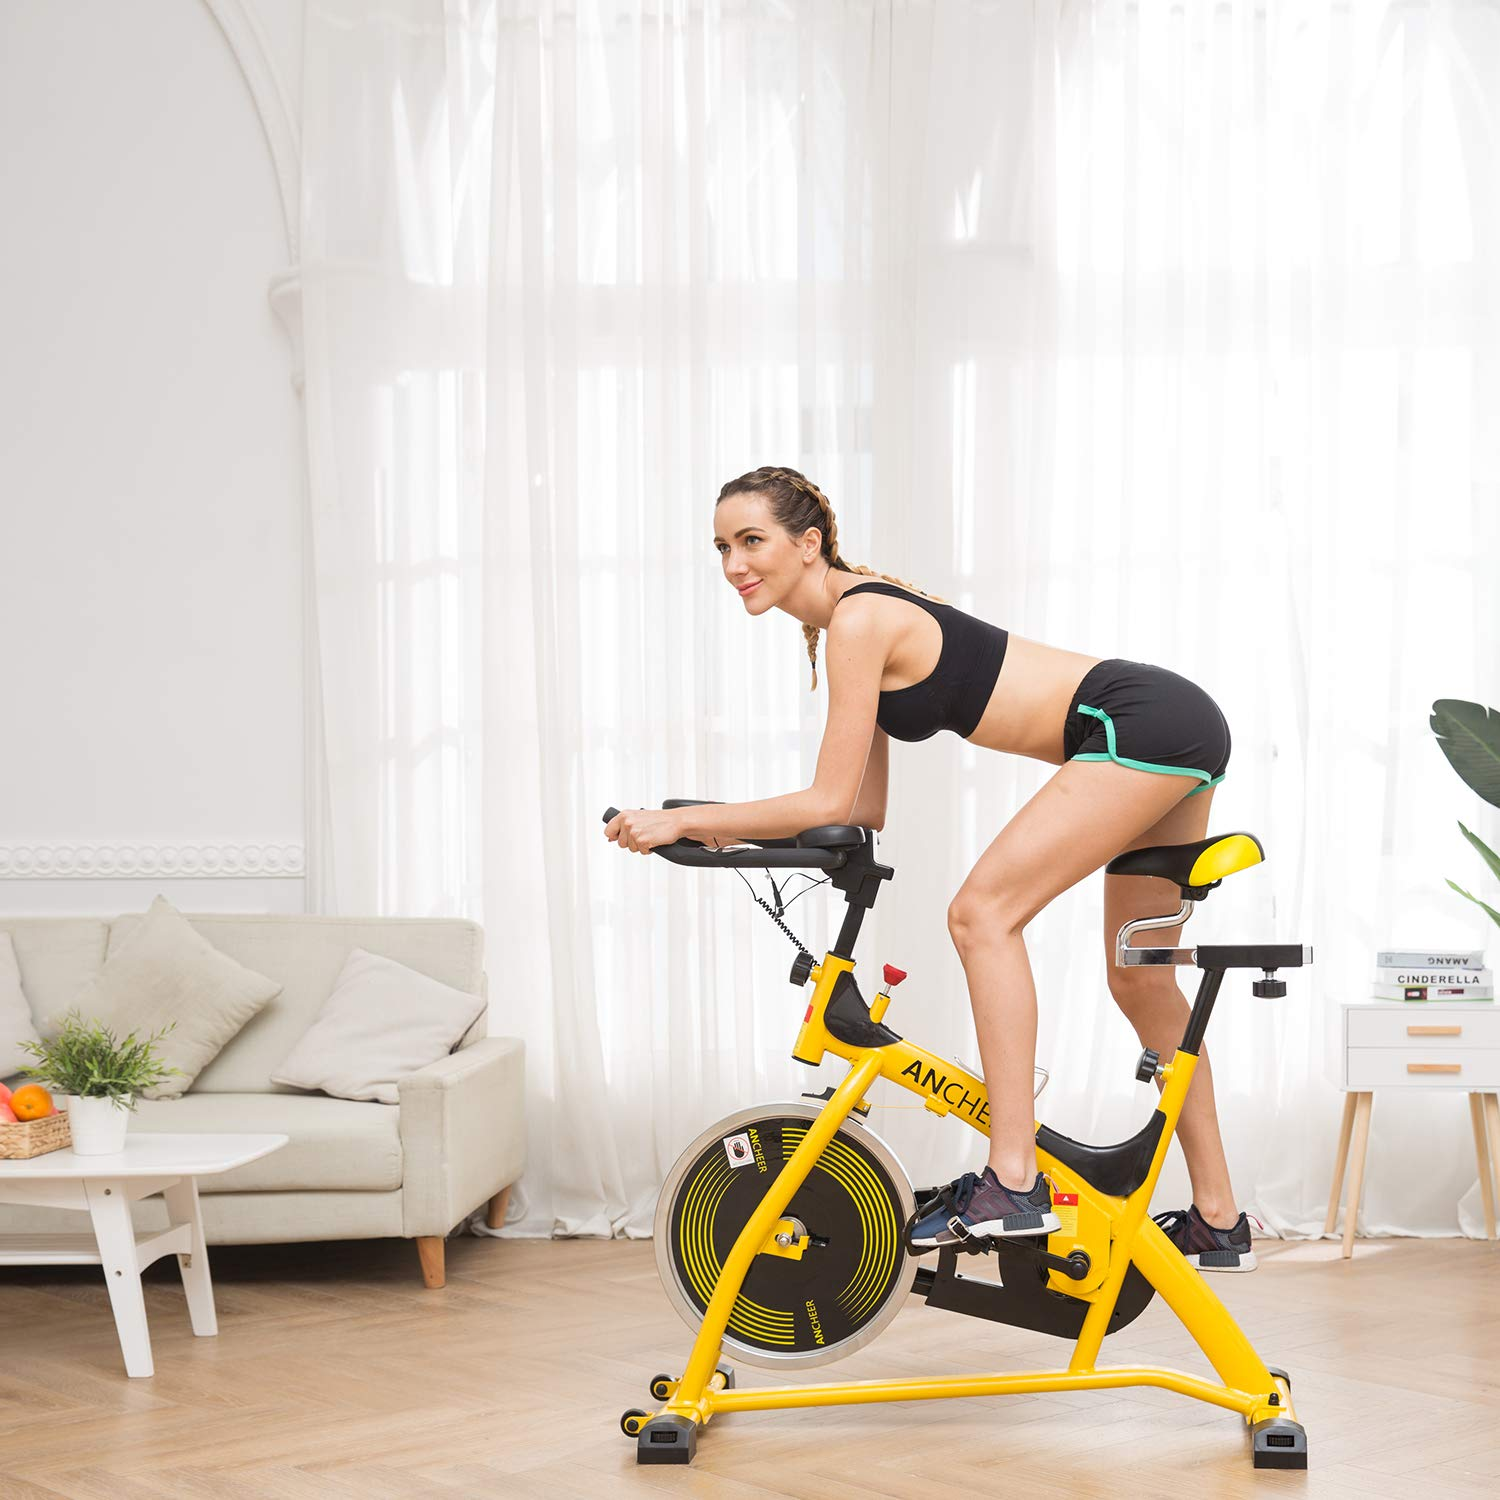 ANCHEER Stationary Bike, 40 LBS Flywheel Belt Drive Indoor Cycling Exercise Bike with Pulse, Elbow Tray (Model: ANCHEER-A5001) (Yellow) by ANCHEER (Image #2)